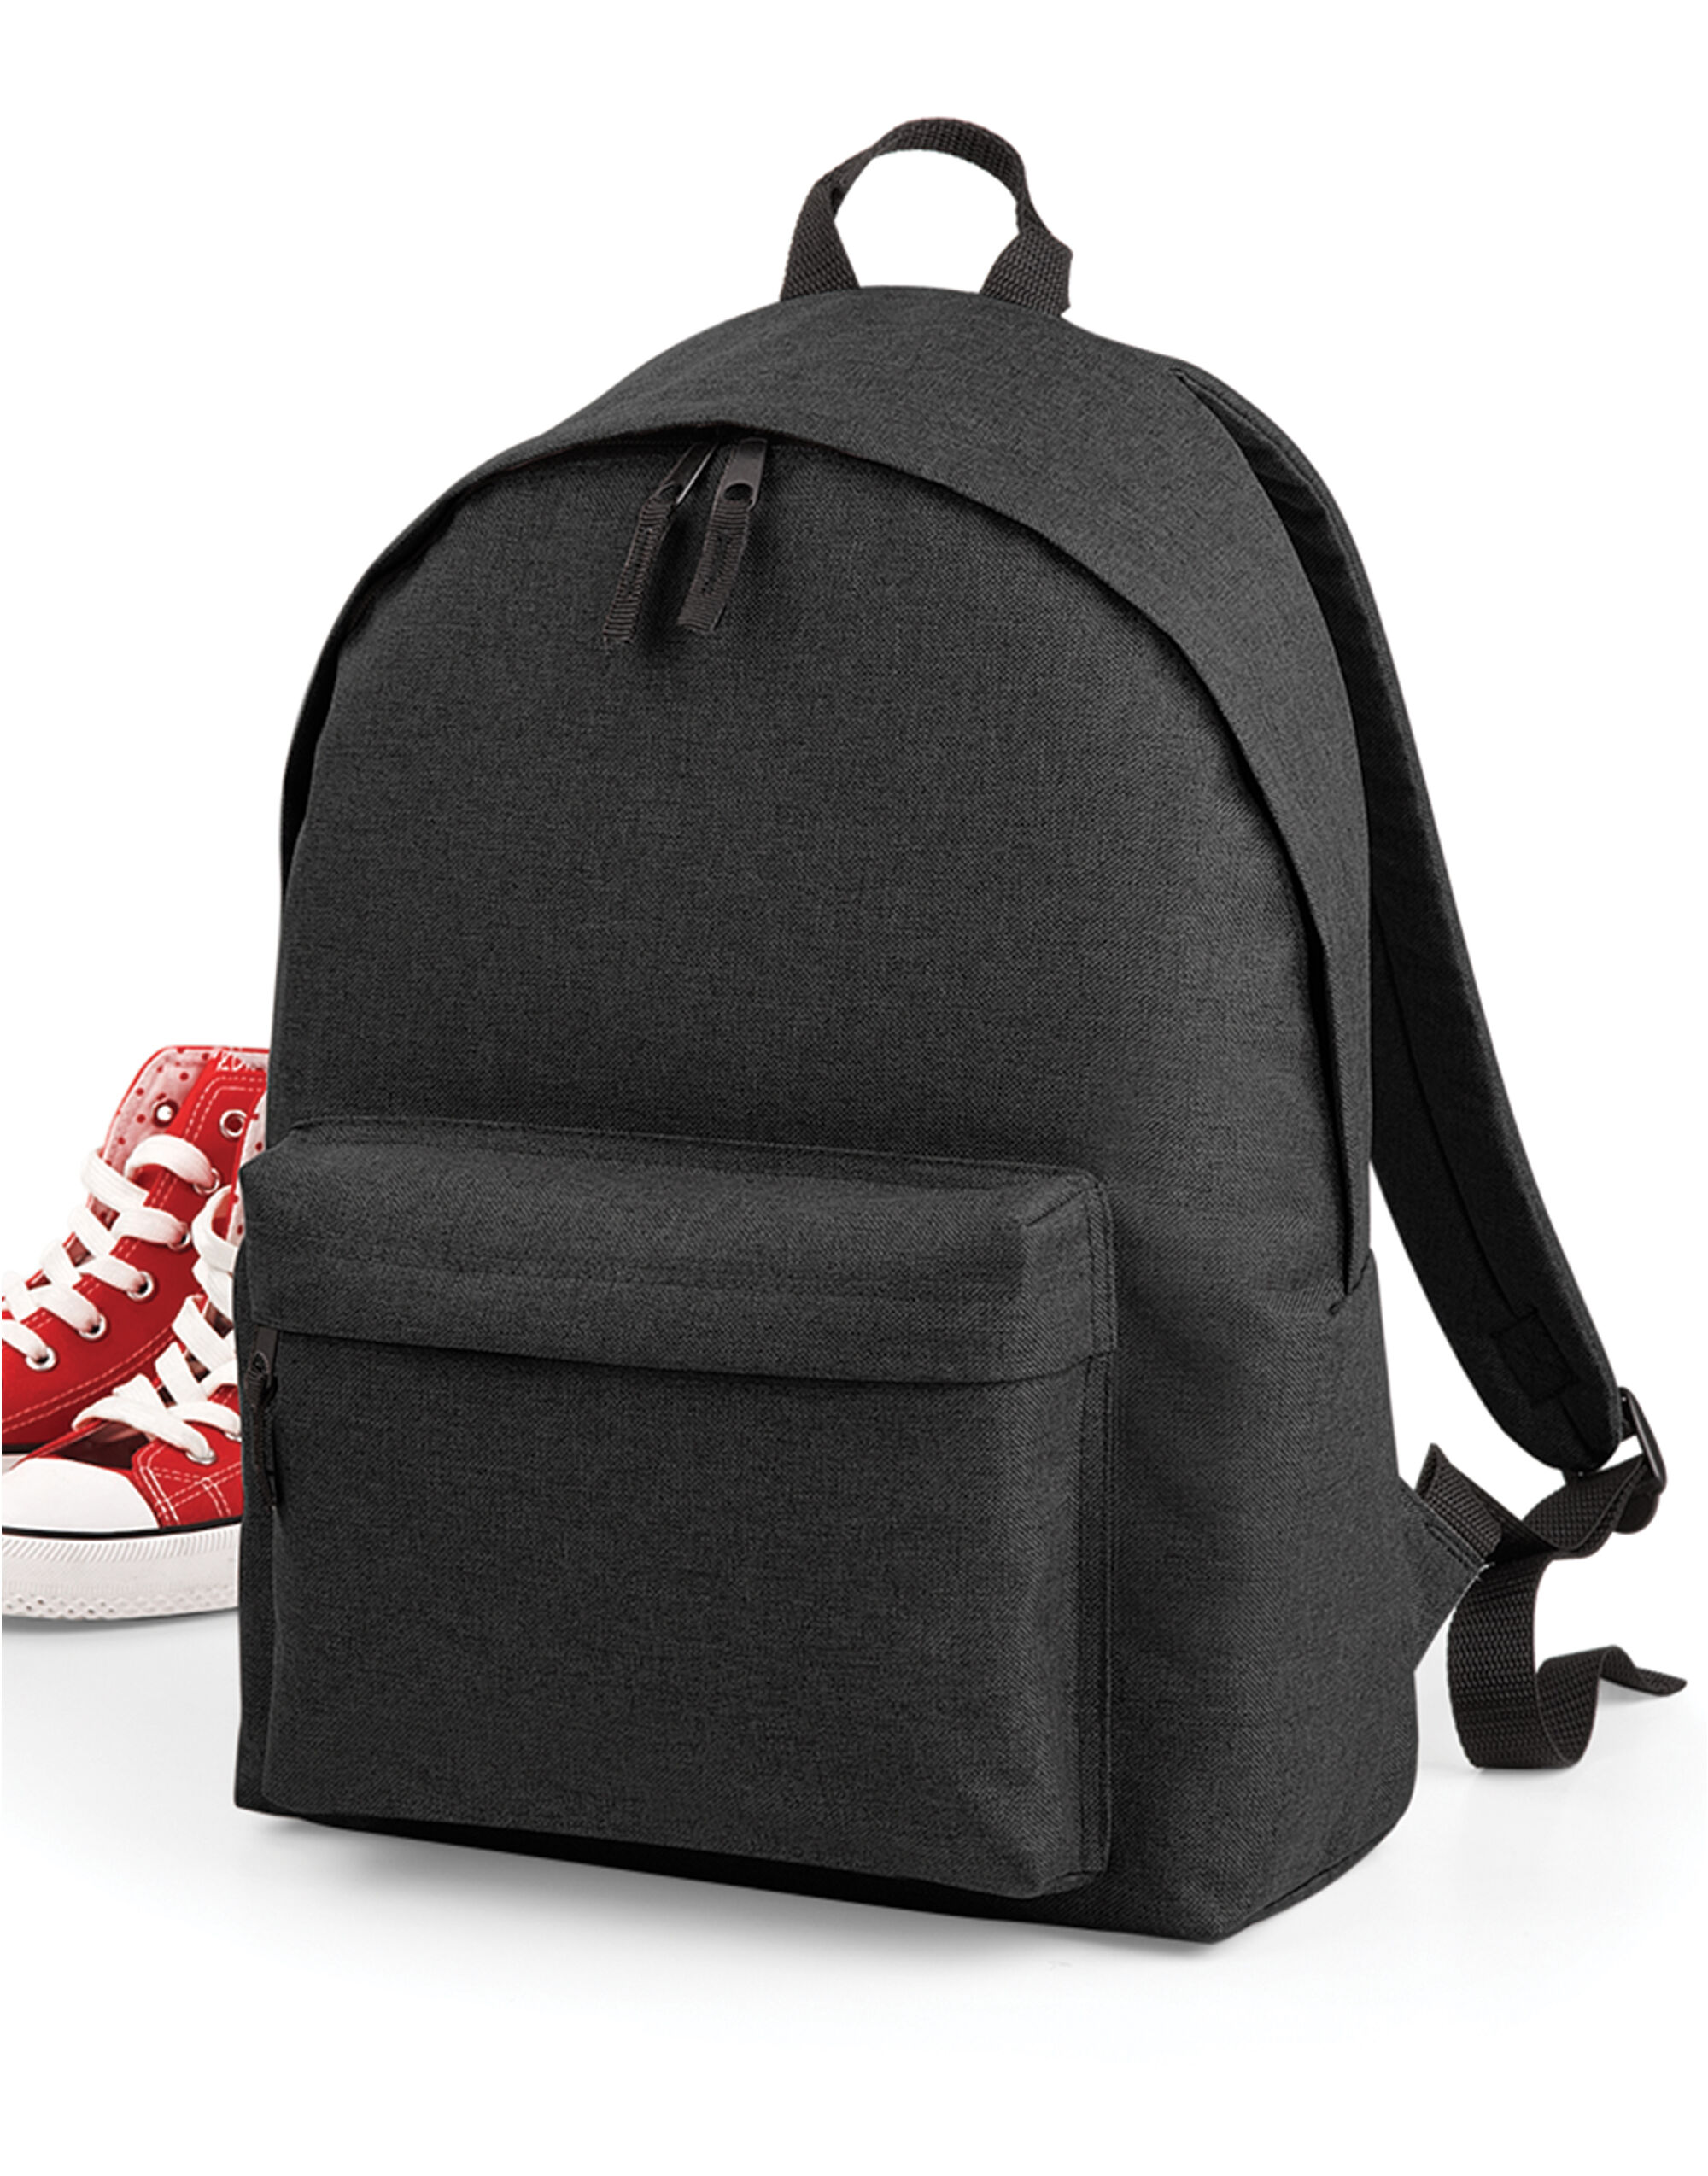 Two Tone Fashion Backpack